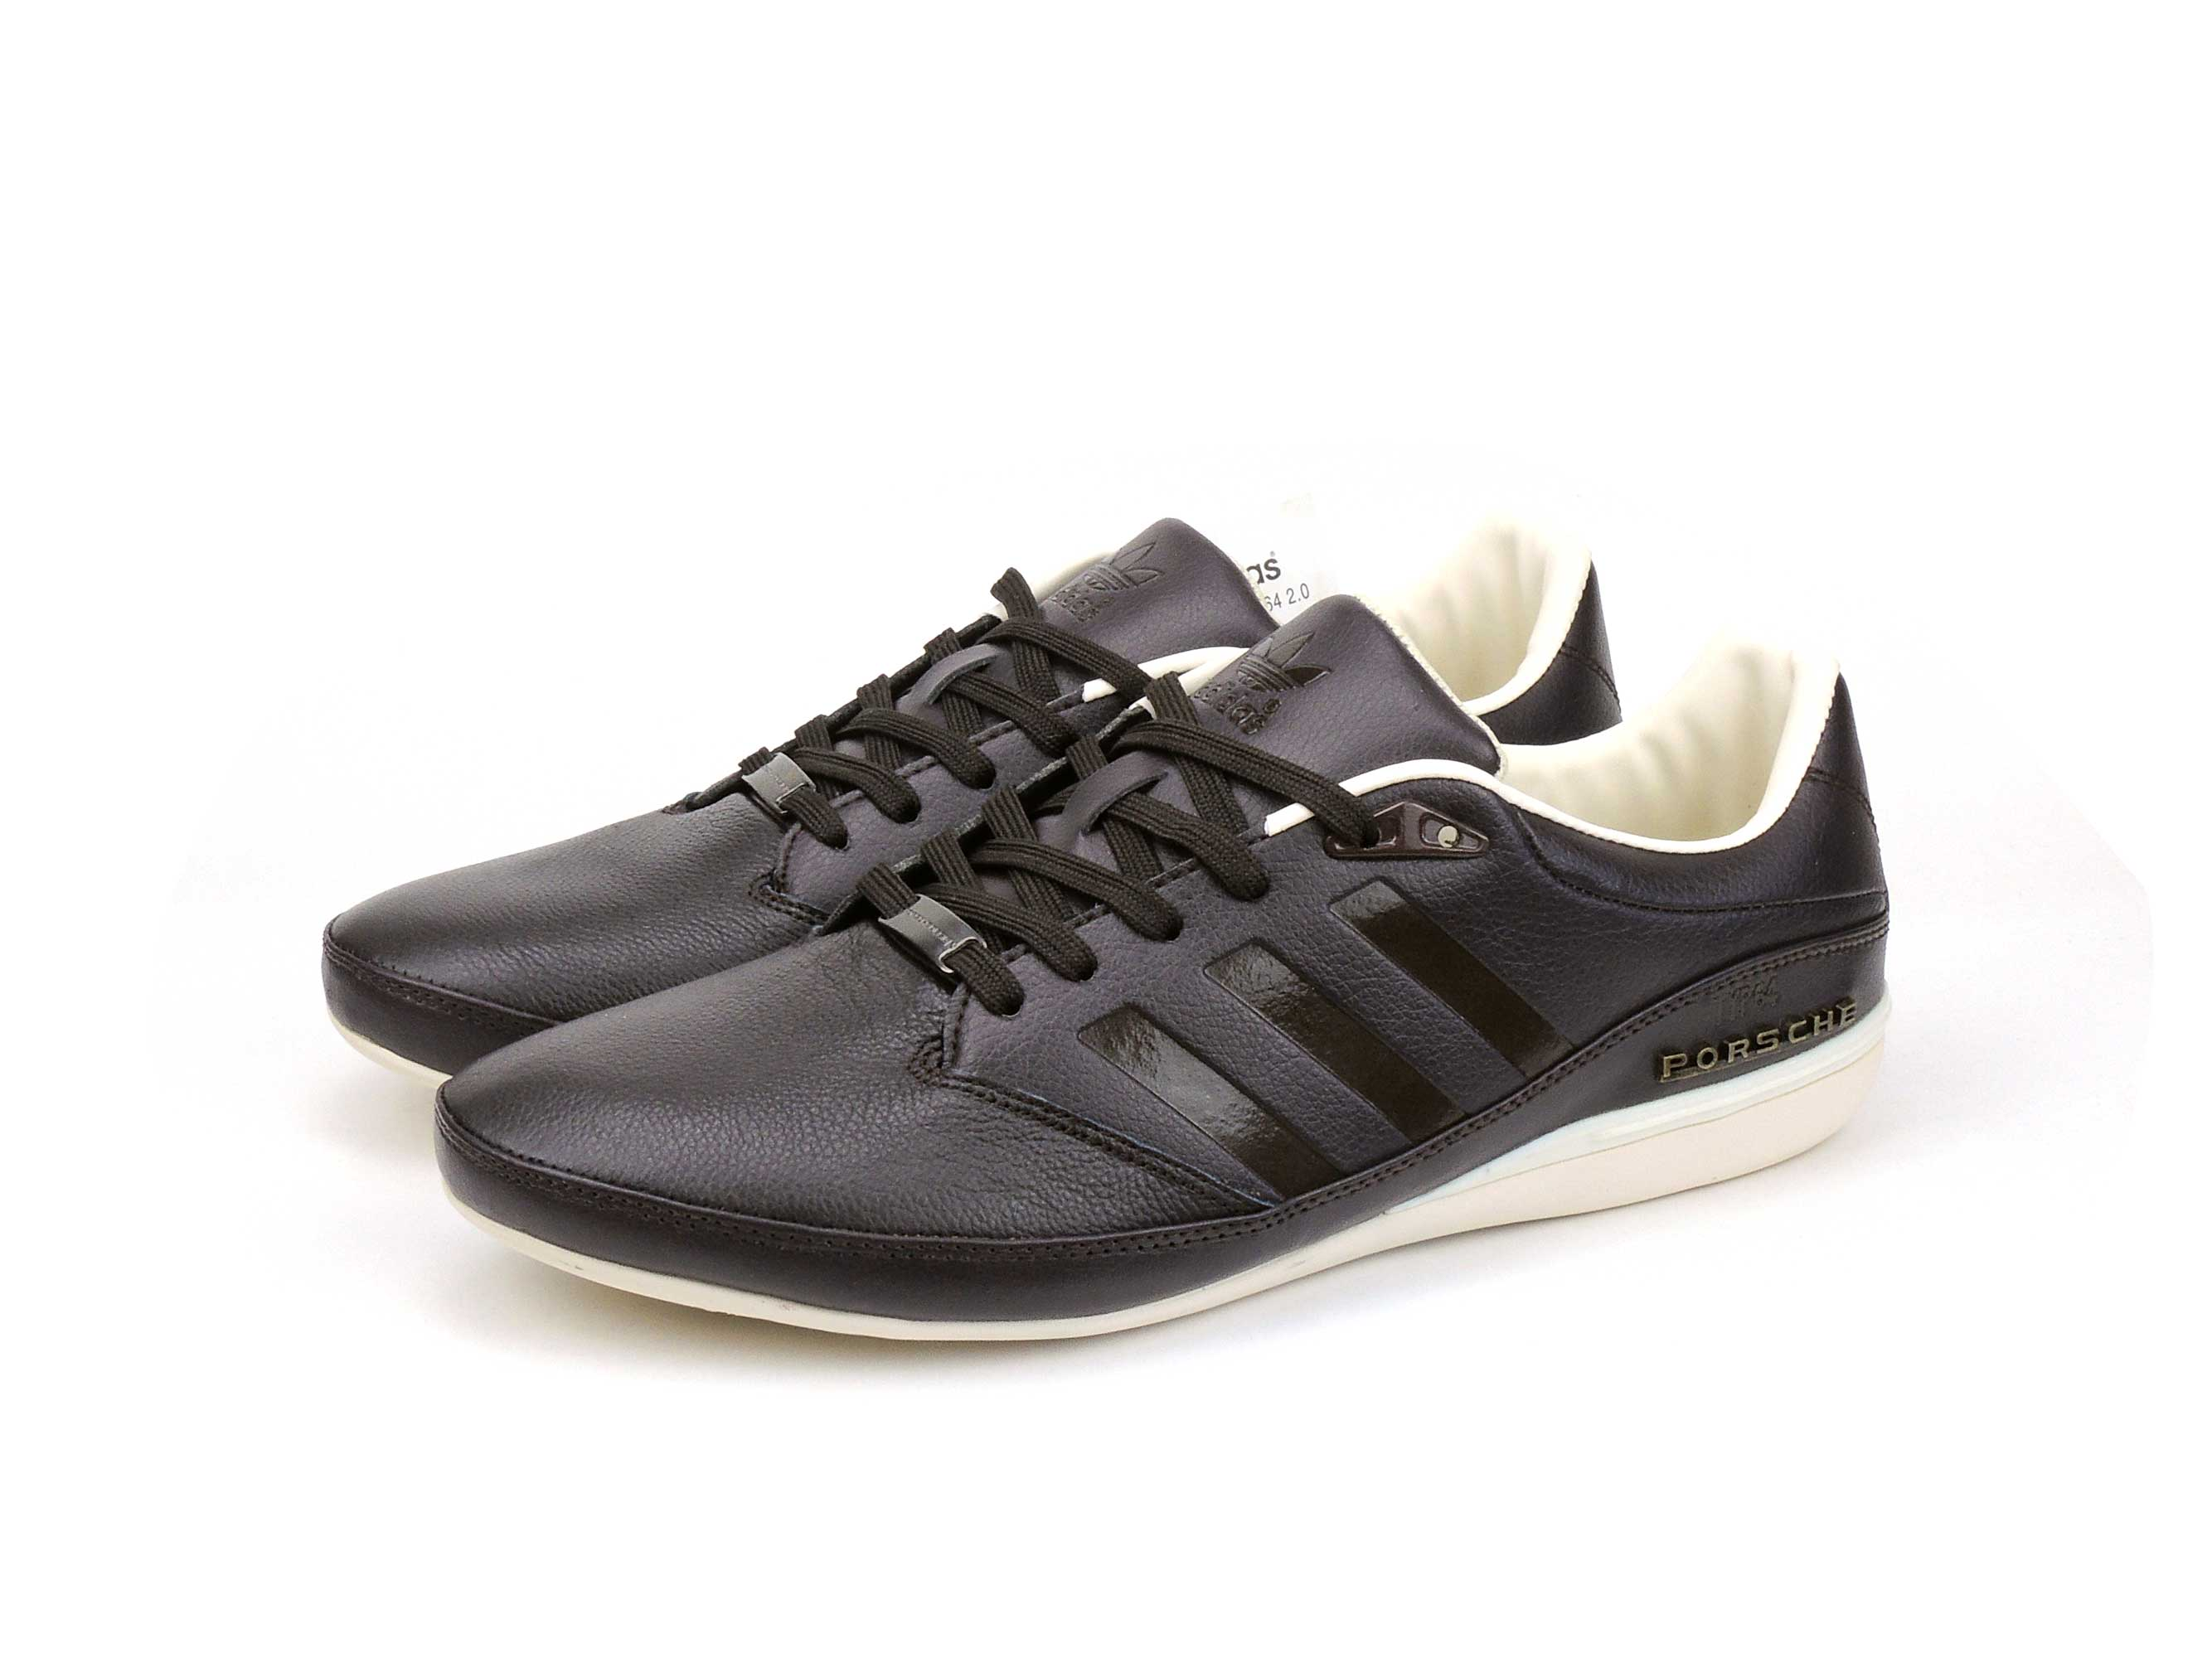 low priced c8641 90e88 adidas porsche design typ 64 2.0 brown S81546